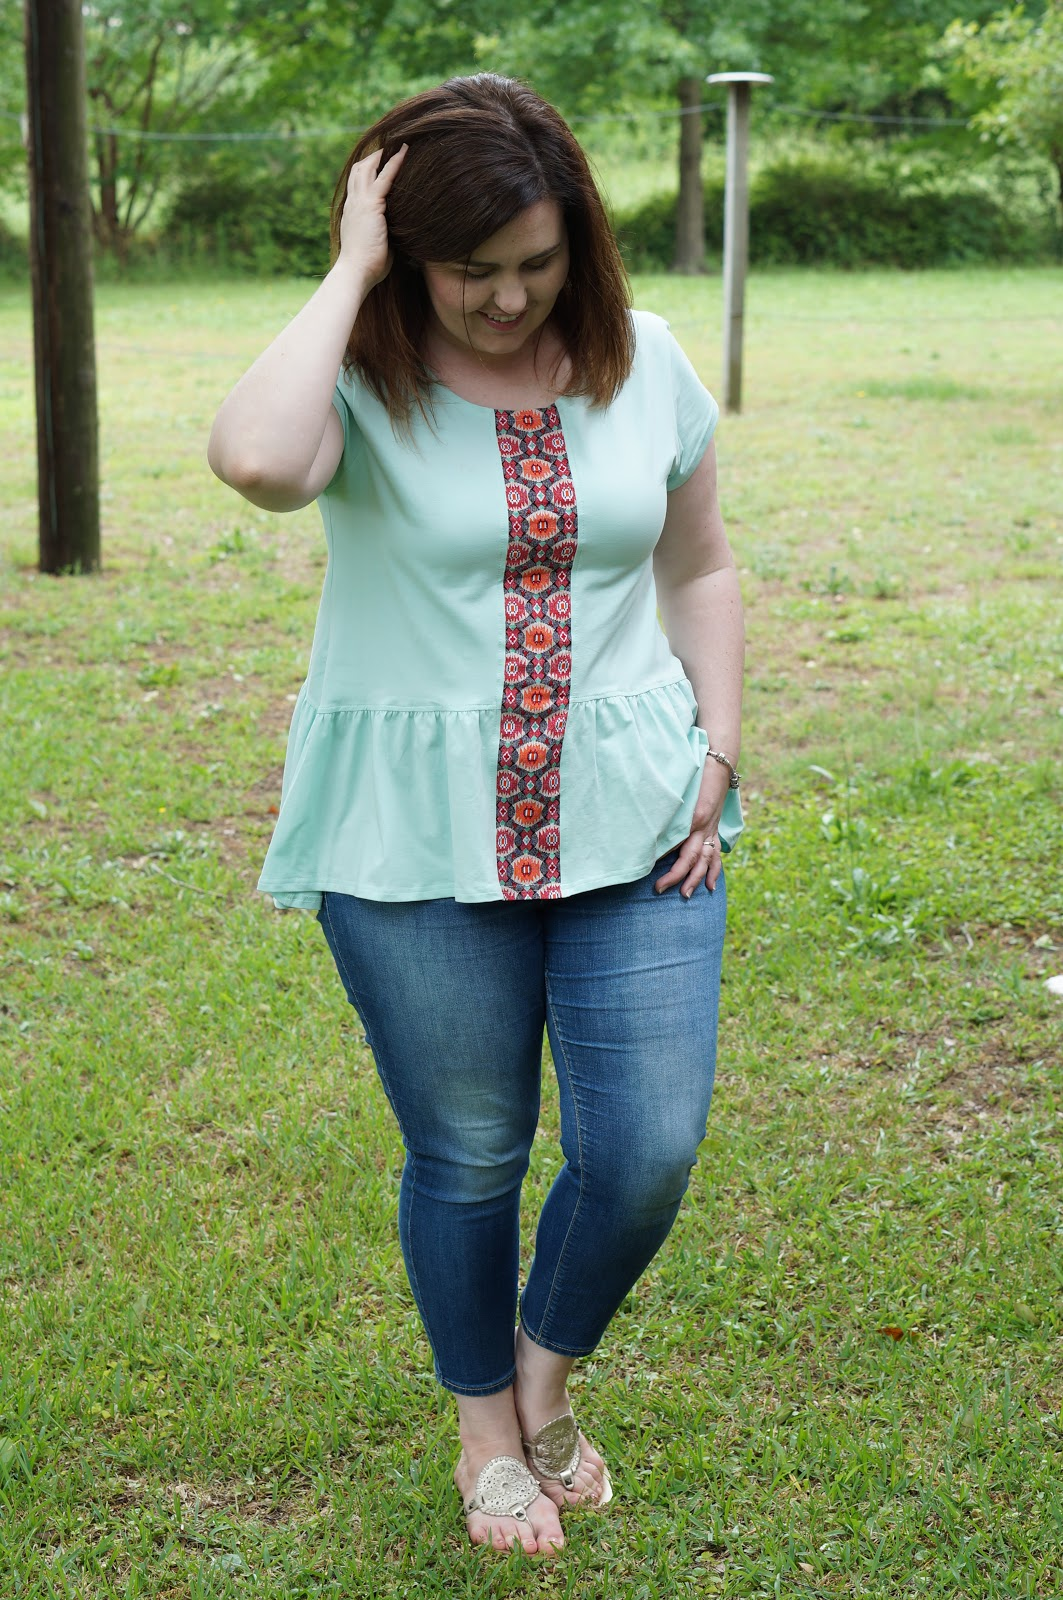 Rebecca Lately Elegantees Lynda Top Soft Turquoise Old Navy Rockstar Cropped Jack Rogers Georgica Platinum